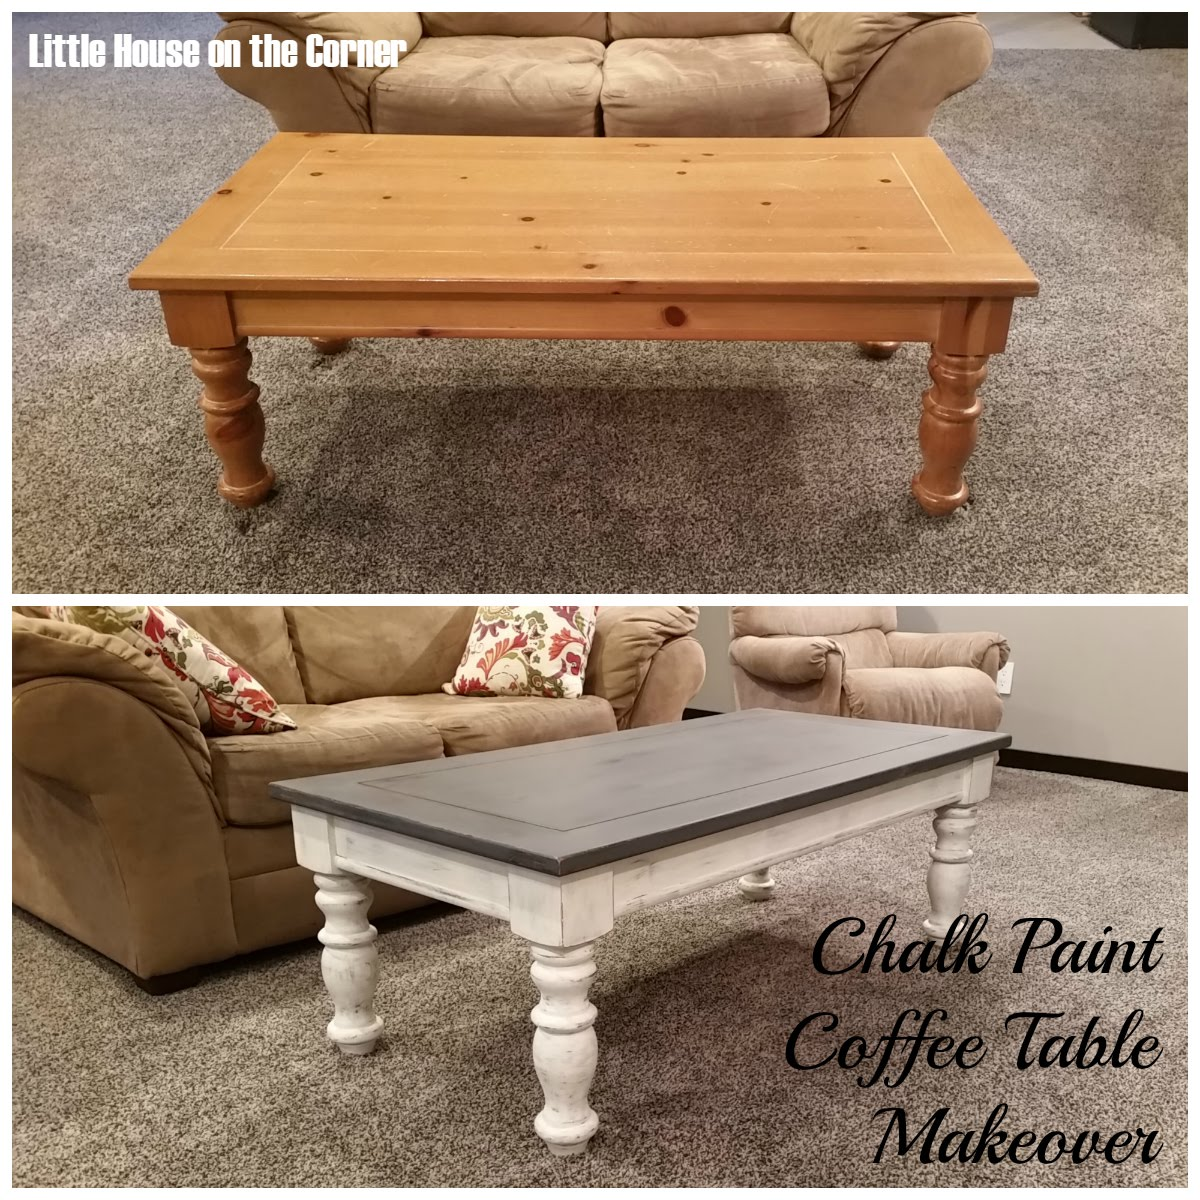 Little house on the corner chalk paint coffee table makeover Coffee table top ideas